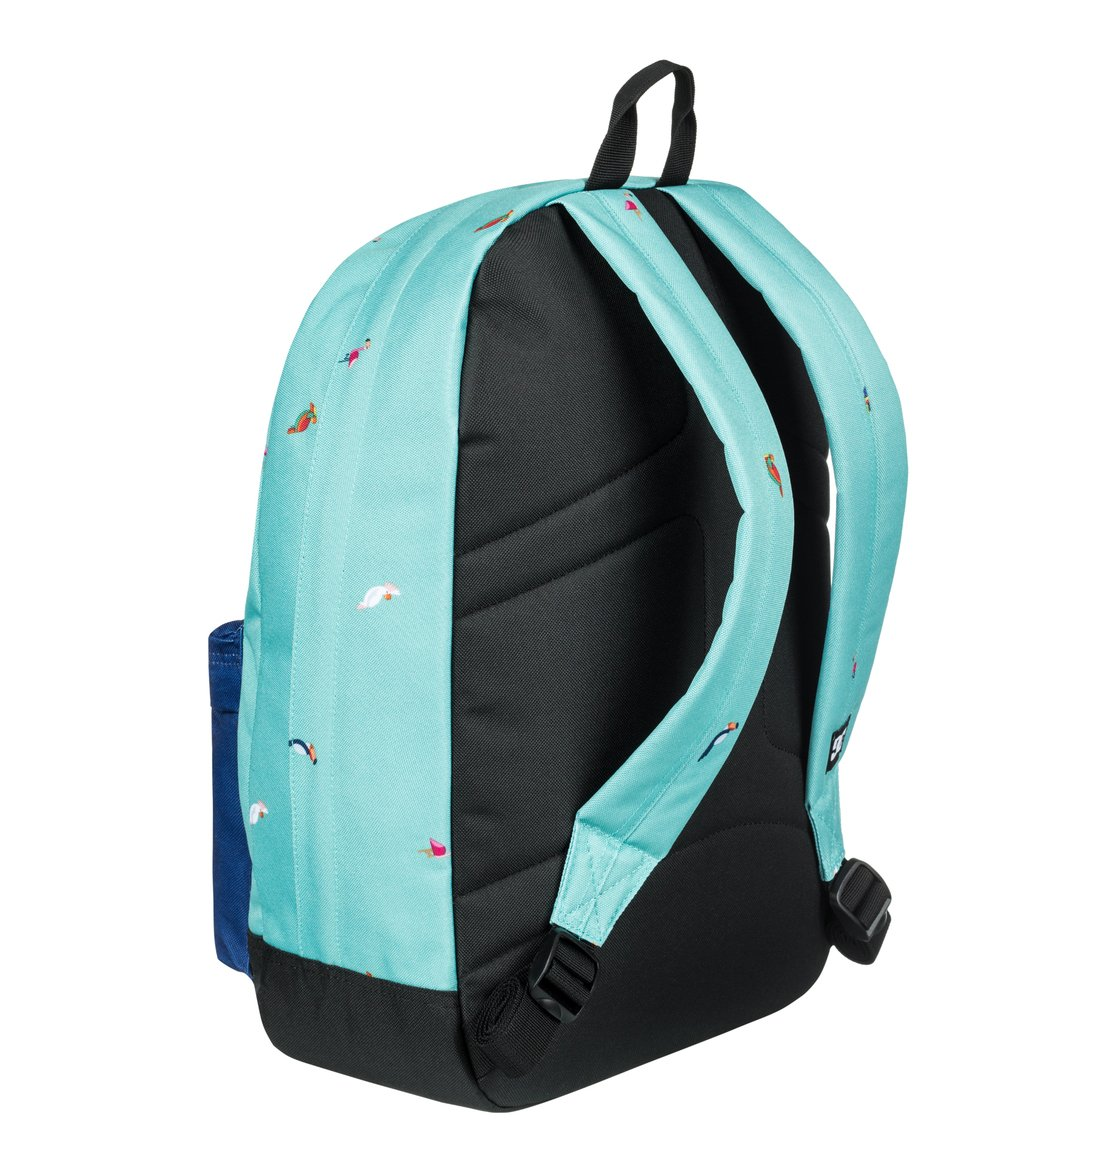 Mochila Mediana Edybp03156 Backstack Azul Shoes Dc 2 ZaqPwP